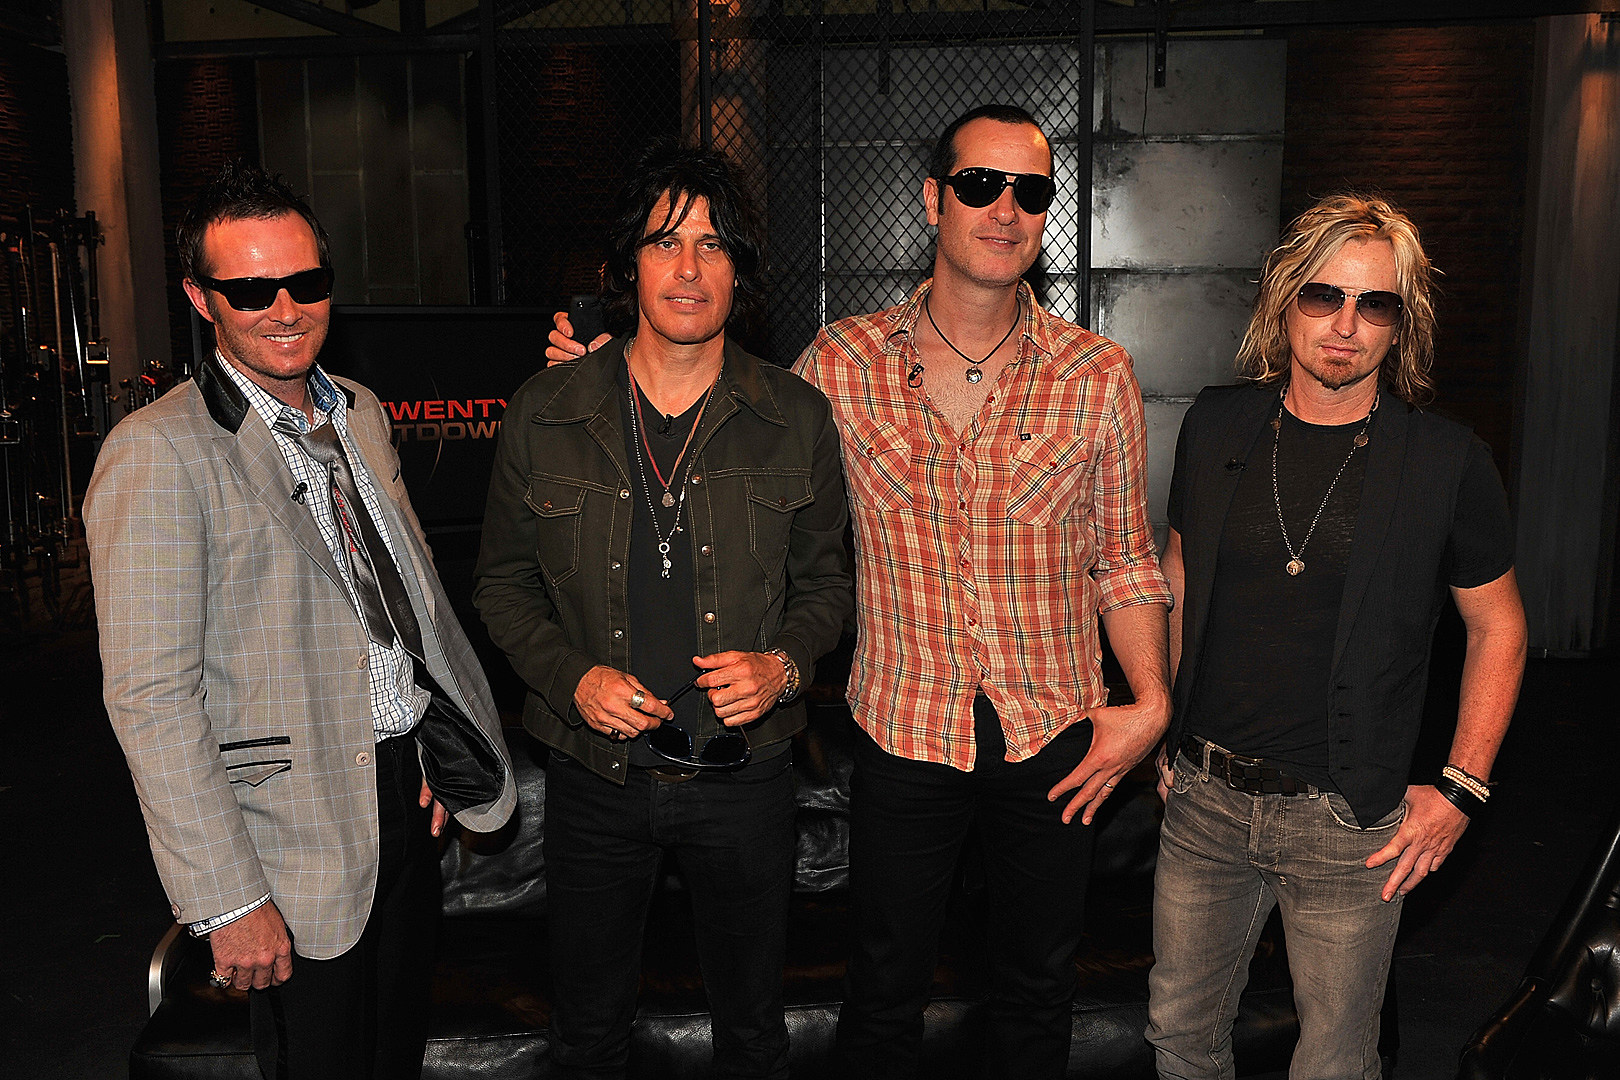 Poll: What's the Best Stone Temple Pilots Song? - Vote Now